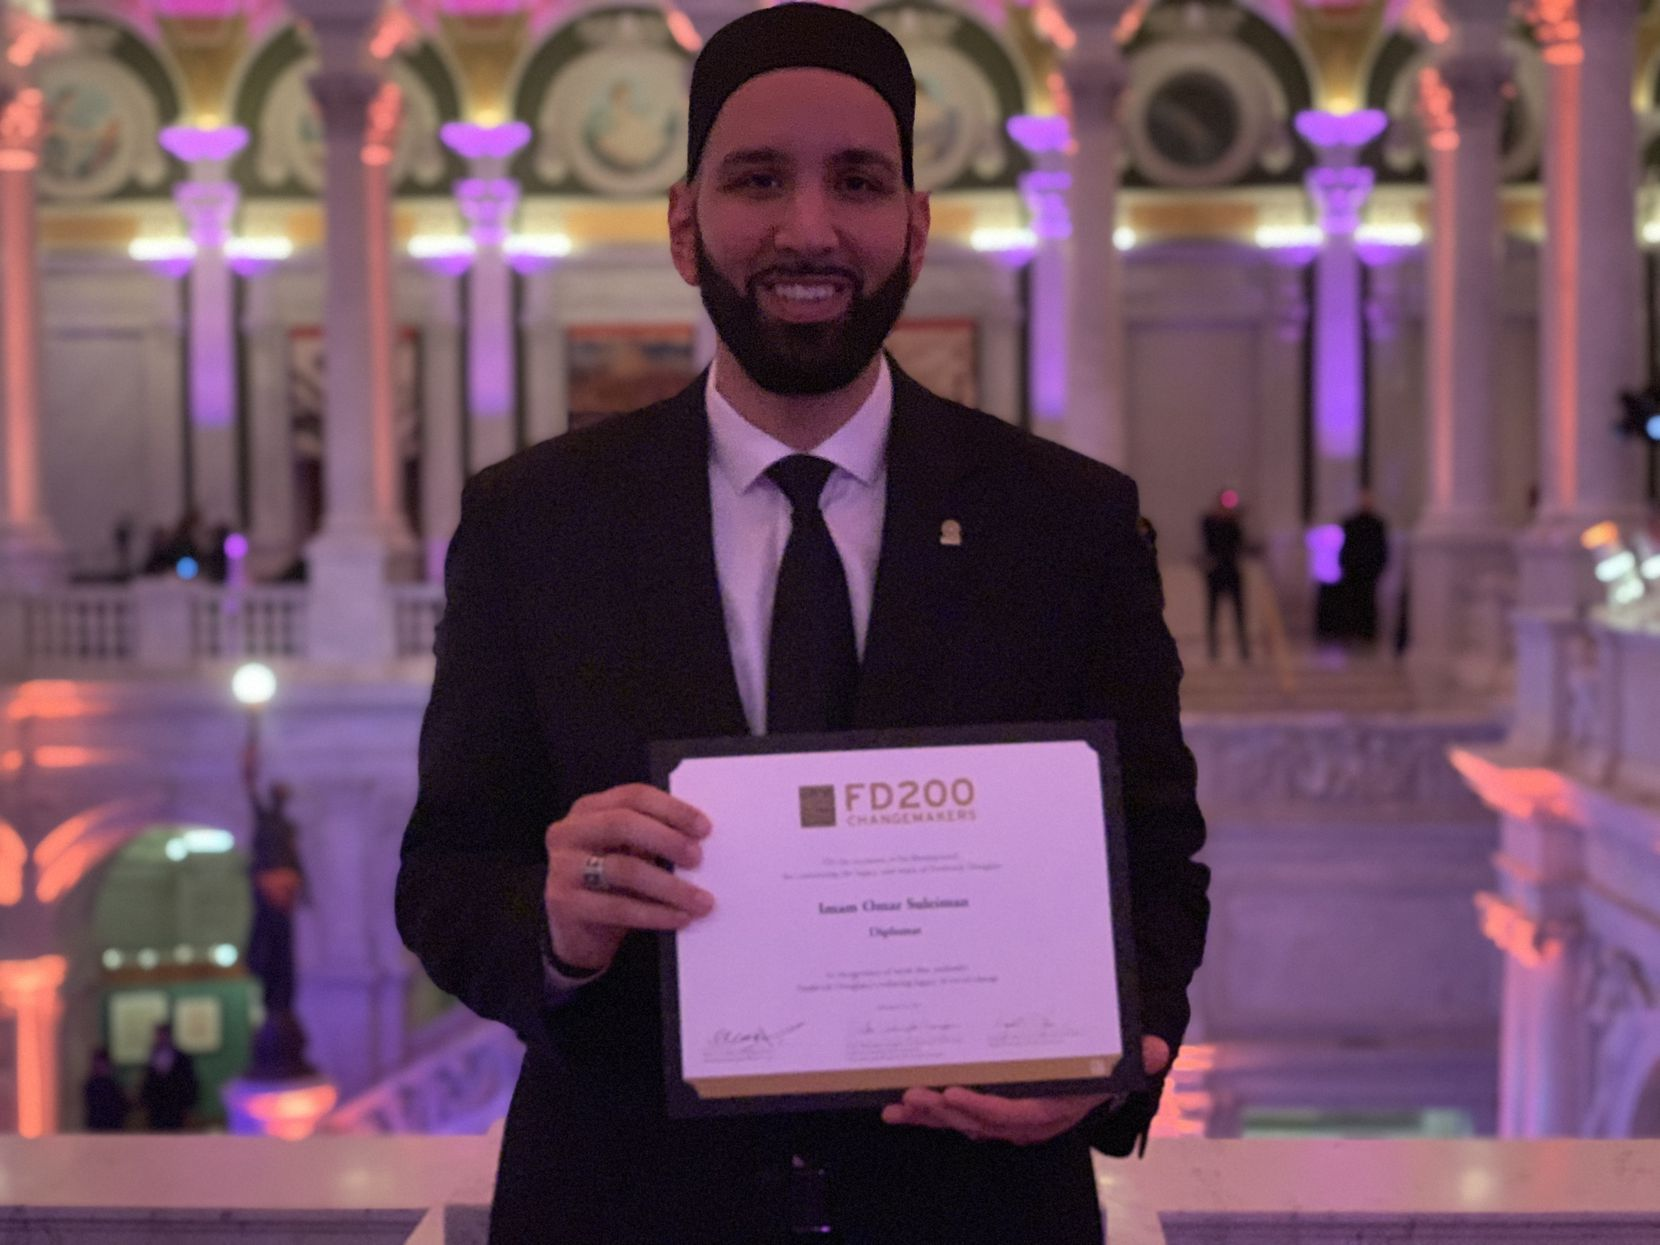 Imam Omar Suleiman is named among 200 activists, celebrities, artists and leaders who continue the work of Frederick Douglass.